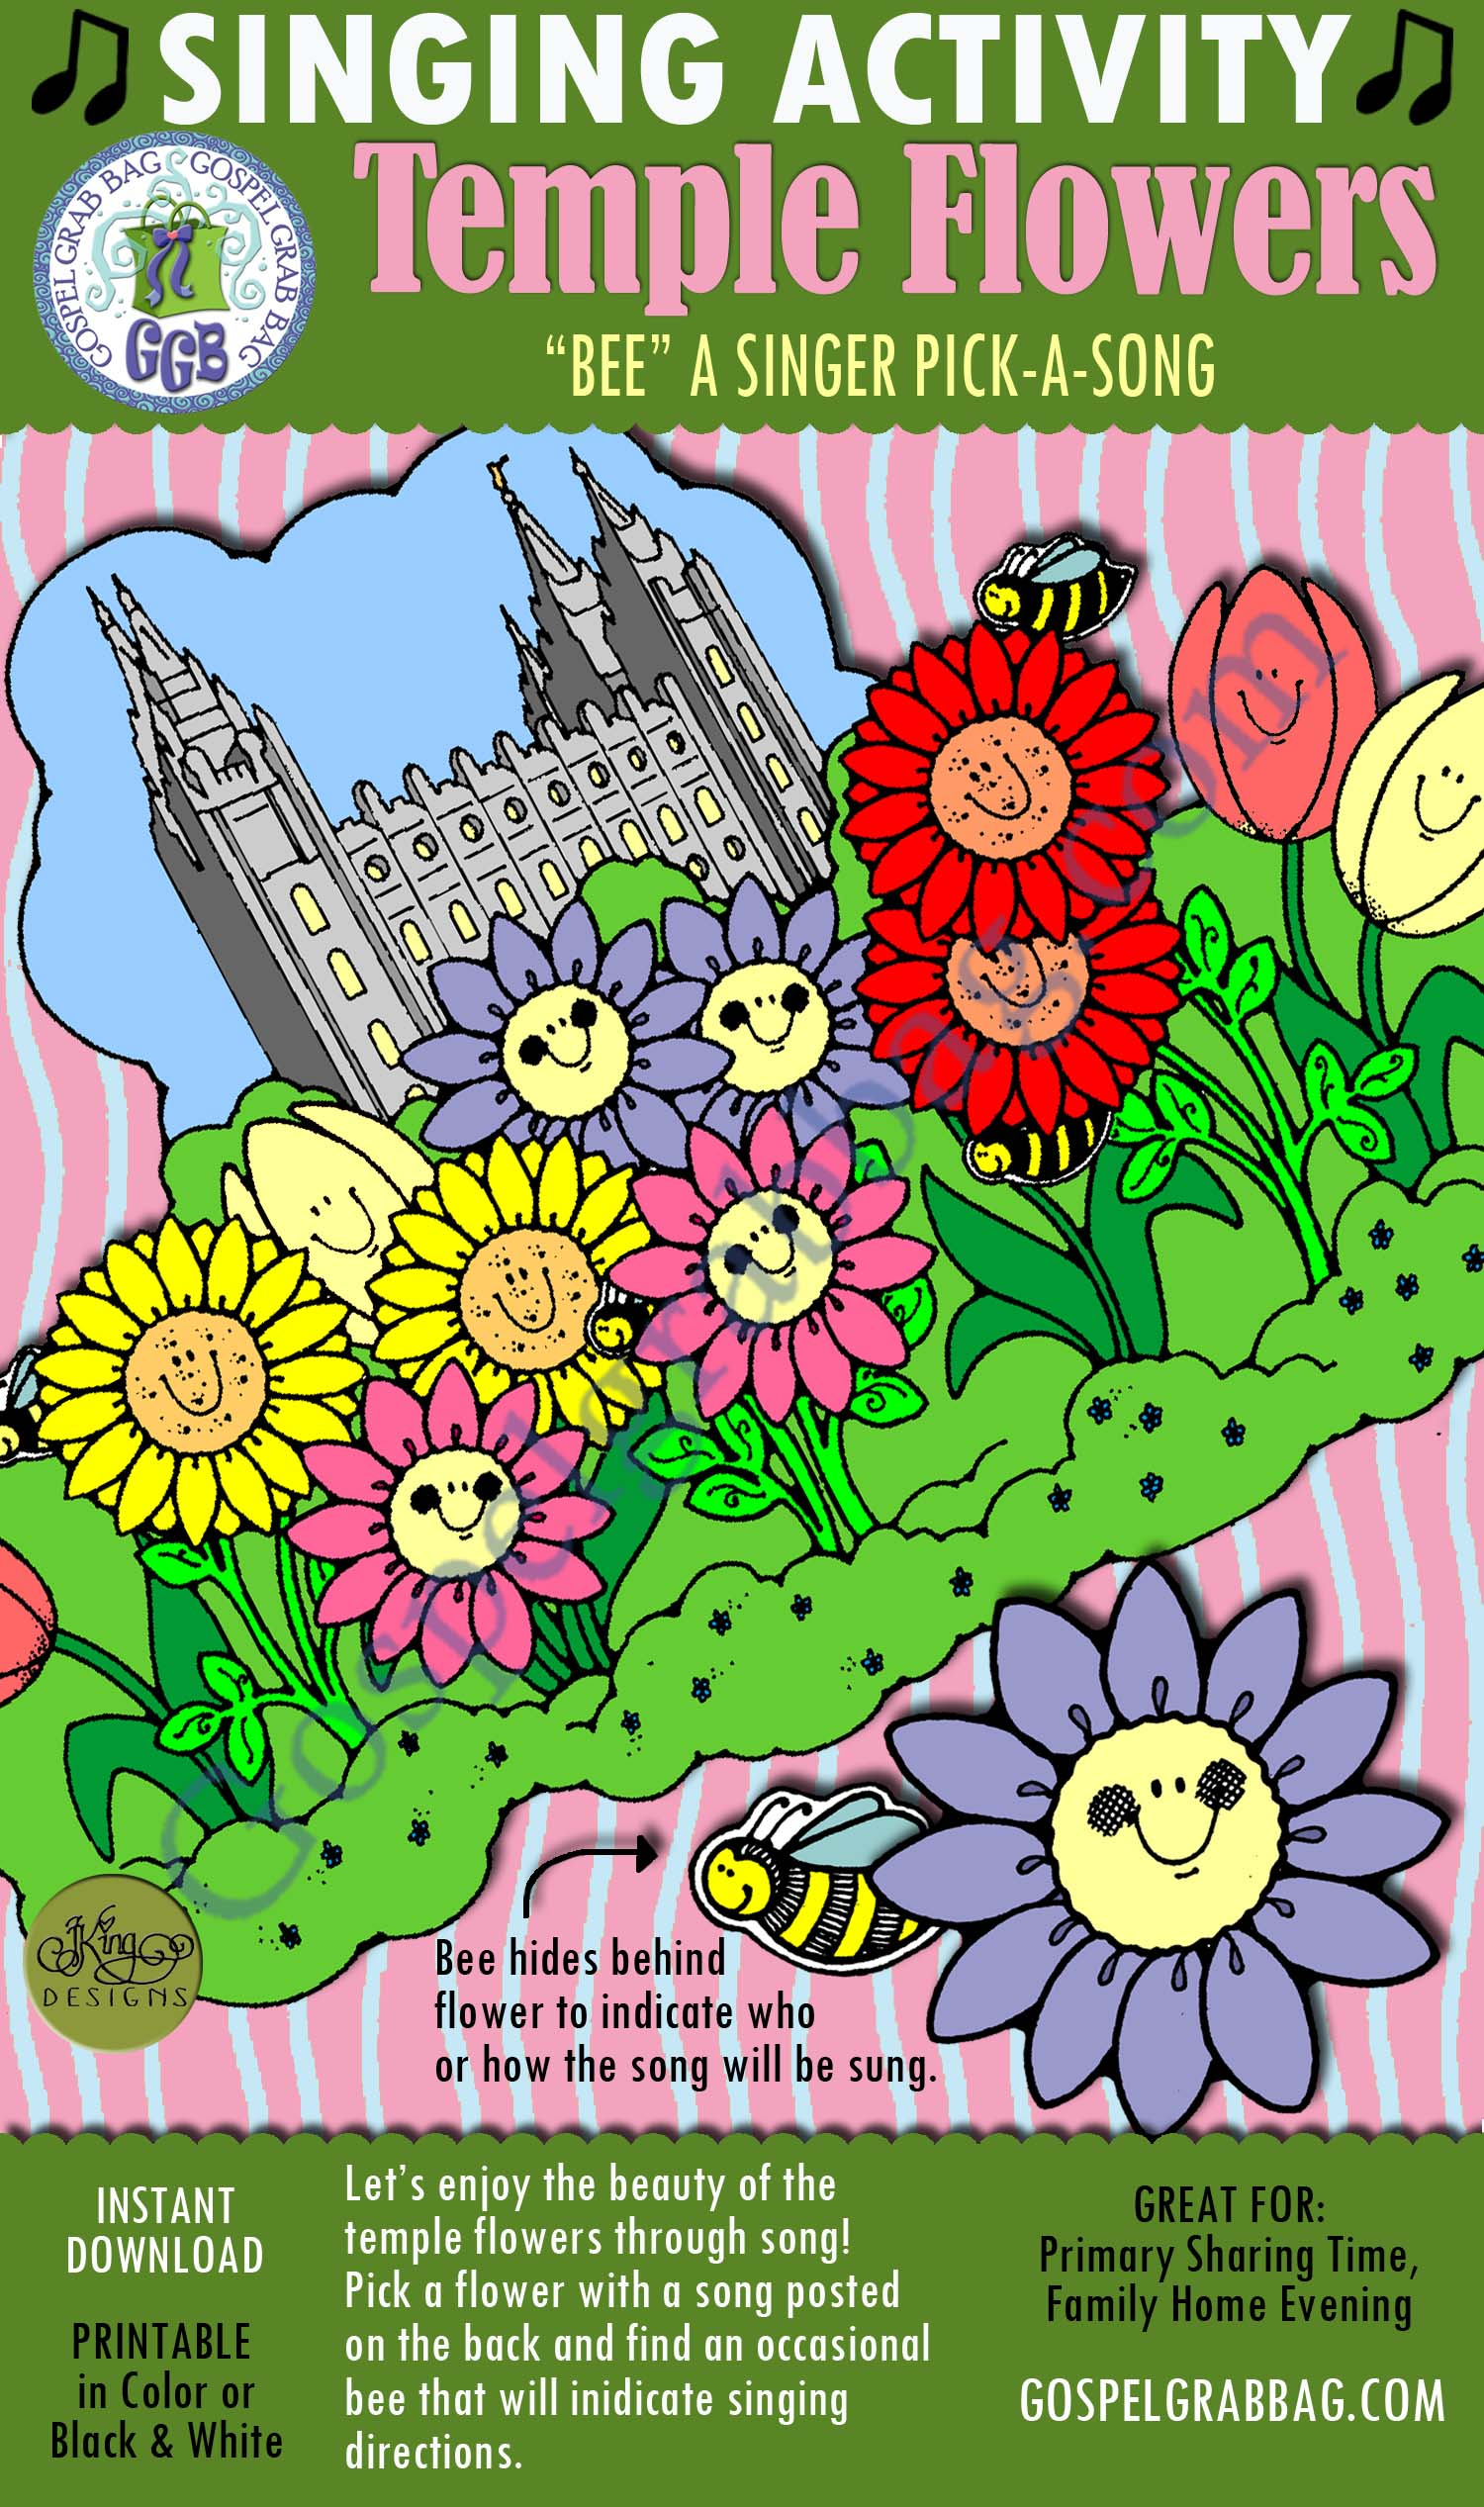 """$3.00 TEMPLE FLOWERS """"Bee"""" a Singer pick-a-song: Primary Music Singing Time Activities to Motivate Children to Sing, download from GospelGrabBag.com"""